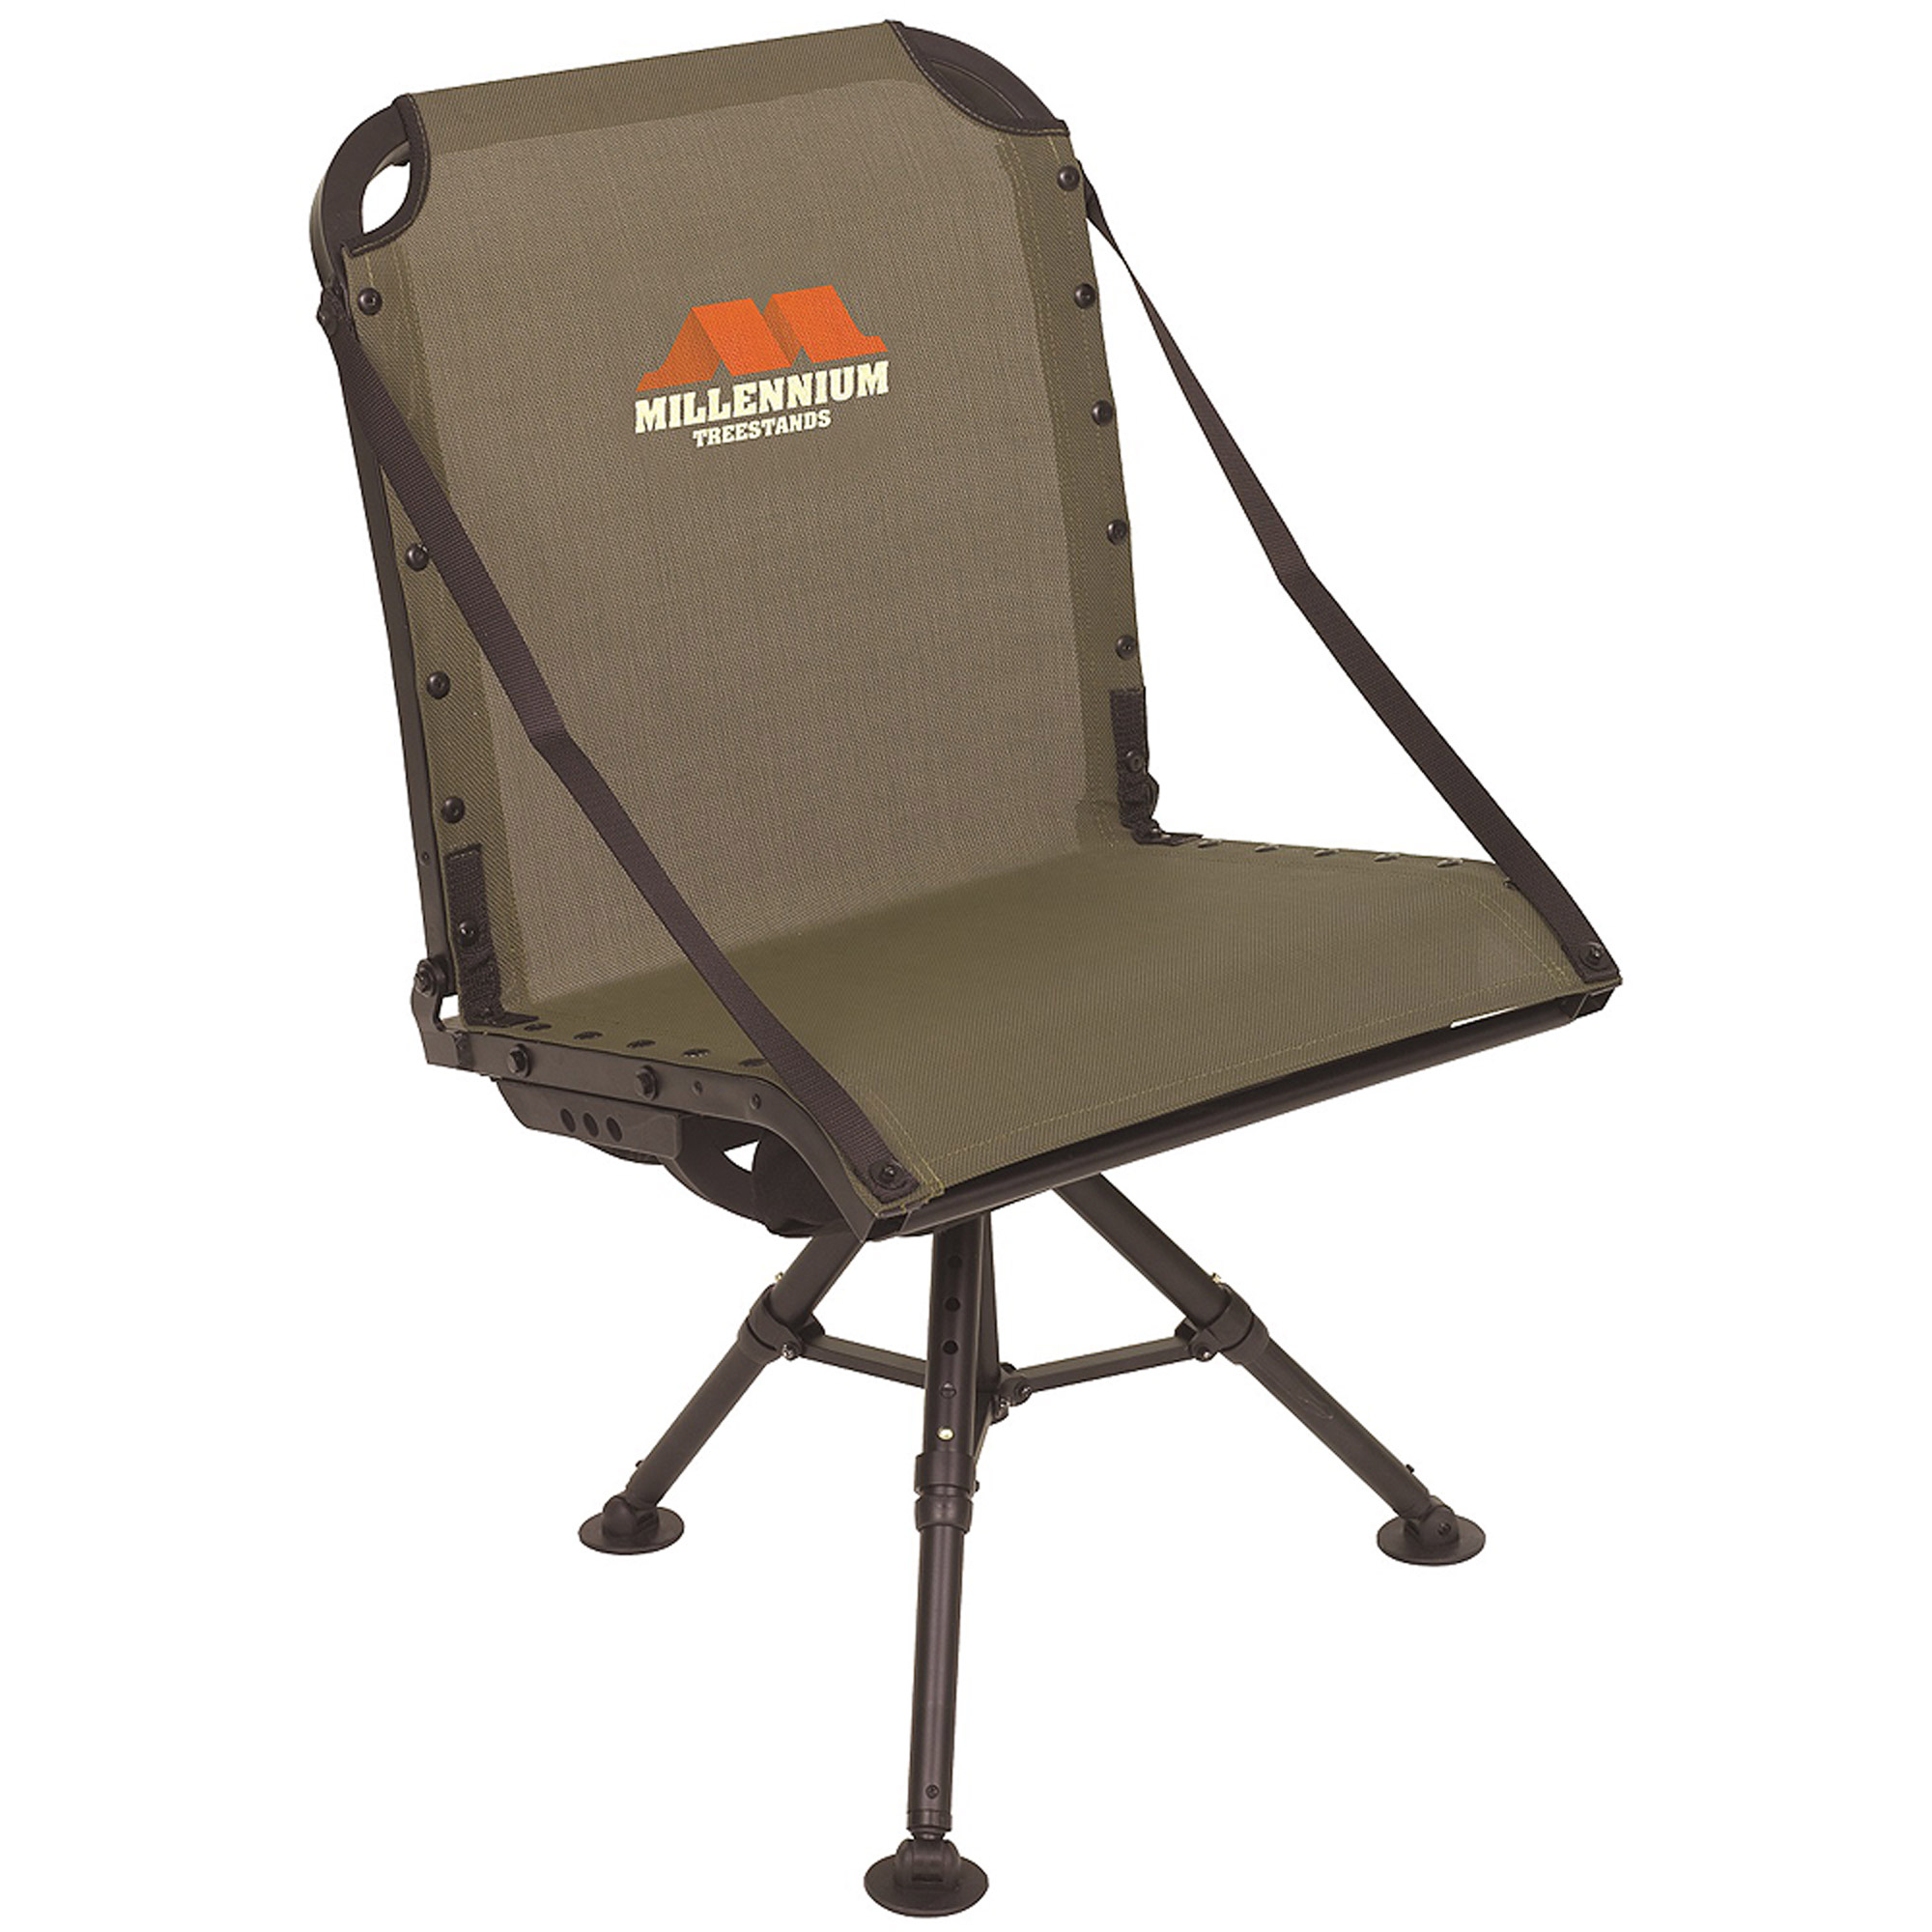 duck hunting chair vitra office chairs uk blind folding stool ground turkey deer outdoor seat details about portable brown